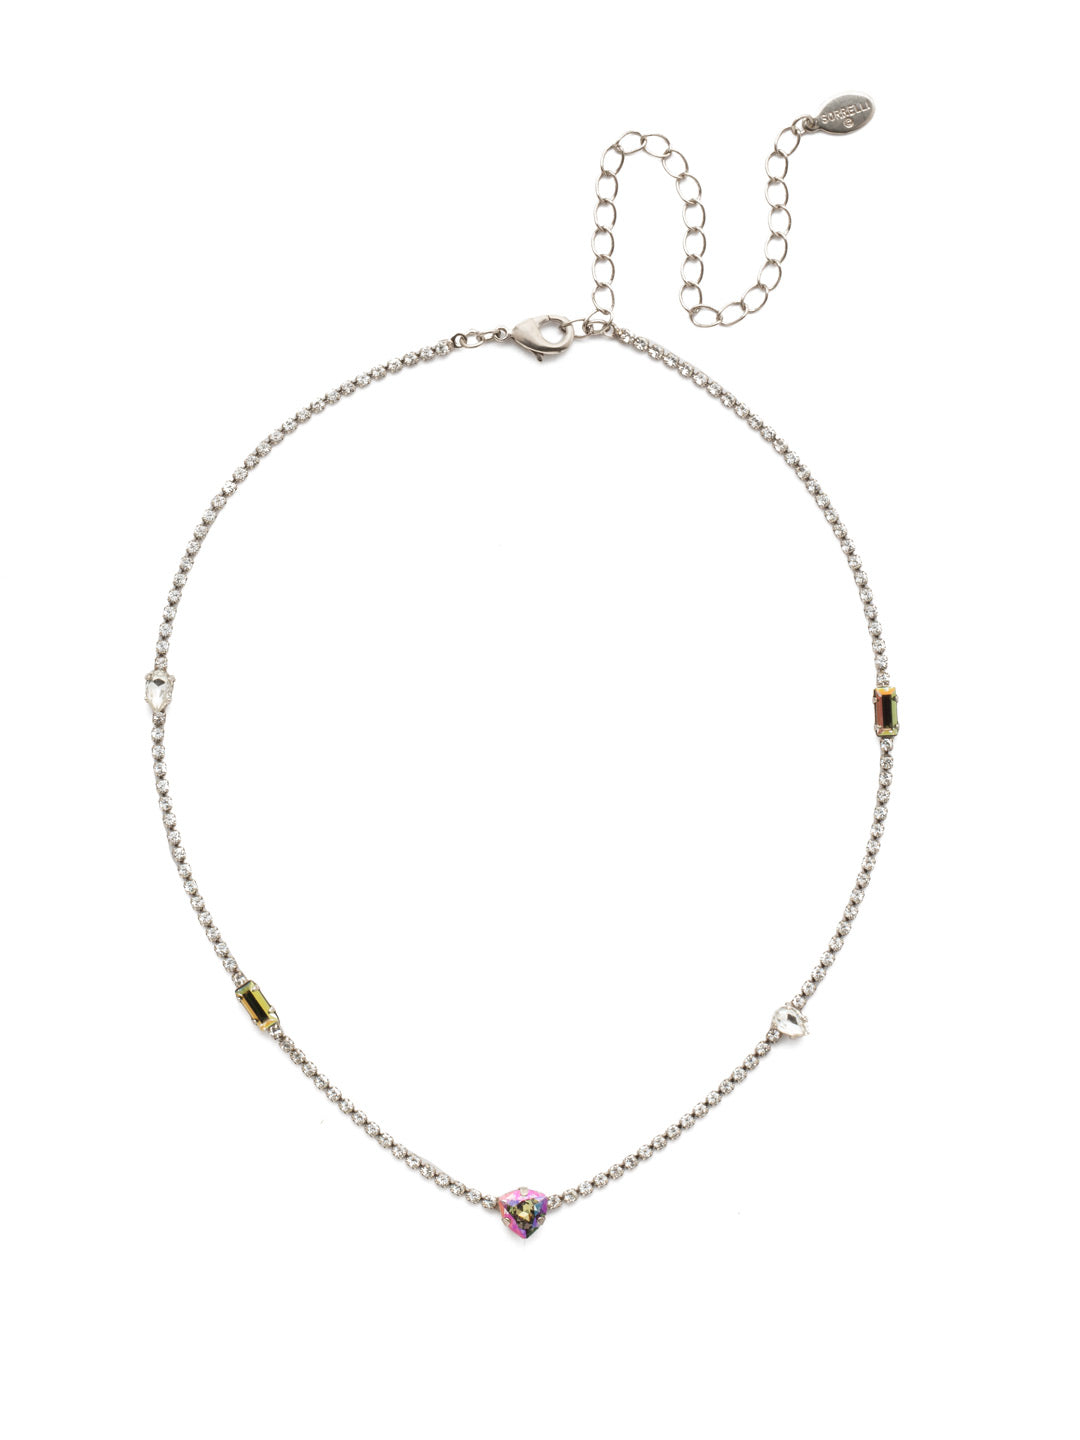 Ophelia Tennis Necklace - NEP9ASCRE